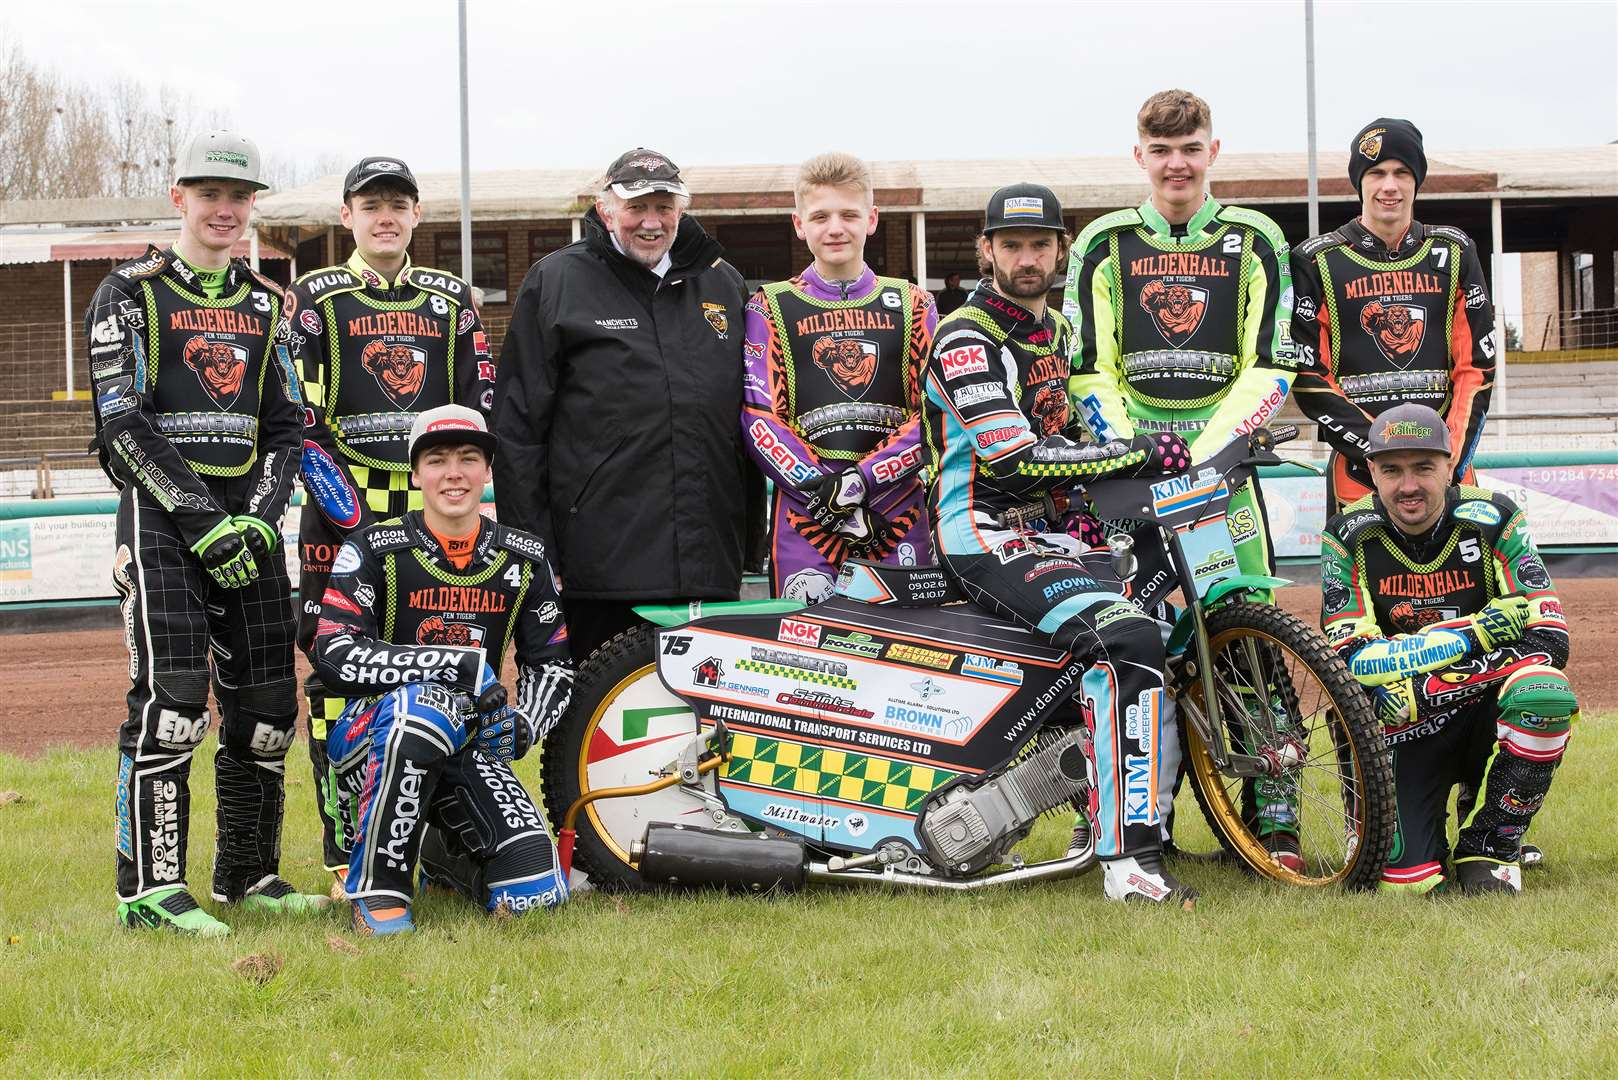 Mildenhall Fen Tigers Press and Practice Day Fen Tigers team 2019 Danny Ayres, Sam Bebee, Charlie Brooks, Jason Edwards, Dave Wallinger, Elliot Kelly, Macauley Leek and Sam Norris Picture by Mark Westley. (8740386)